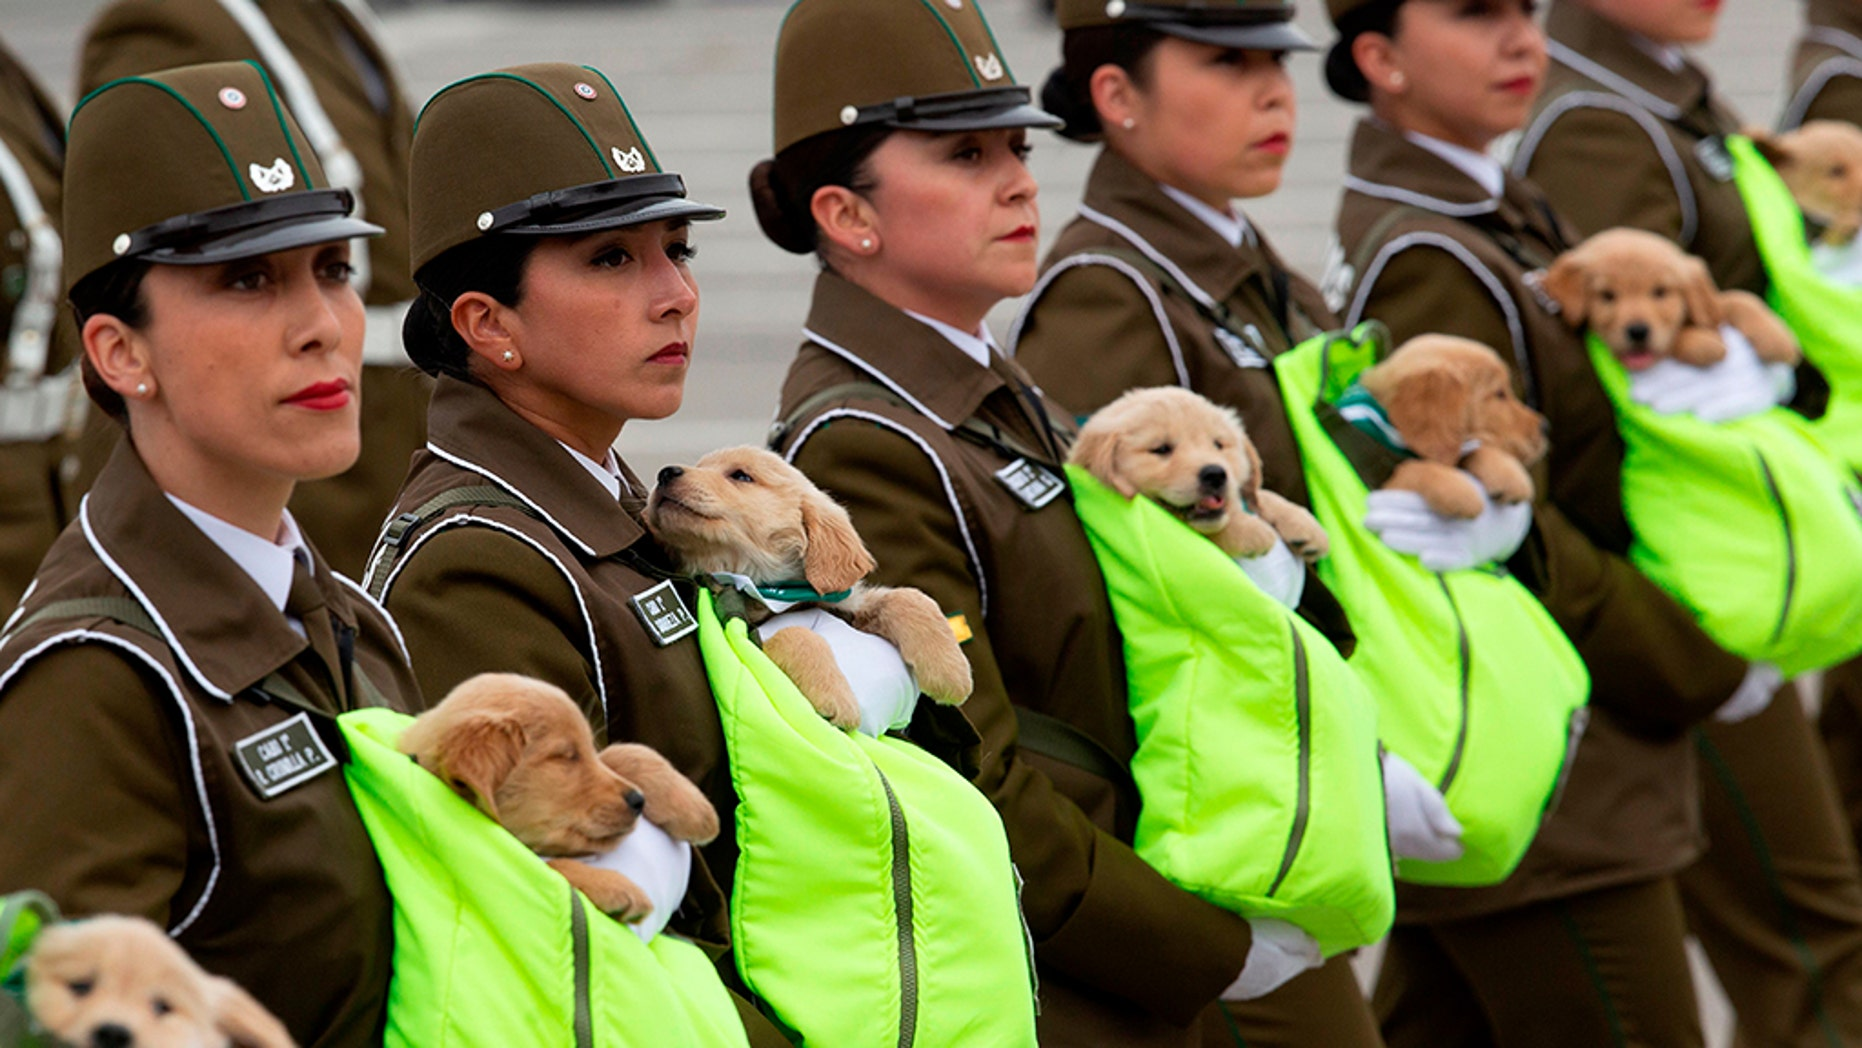 Female Chilean police officers march with puppies, future police dogs, during the celebration parade of Chile's 208th Independence anniversary.